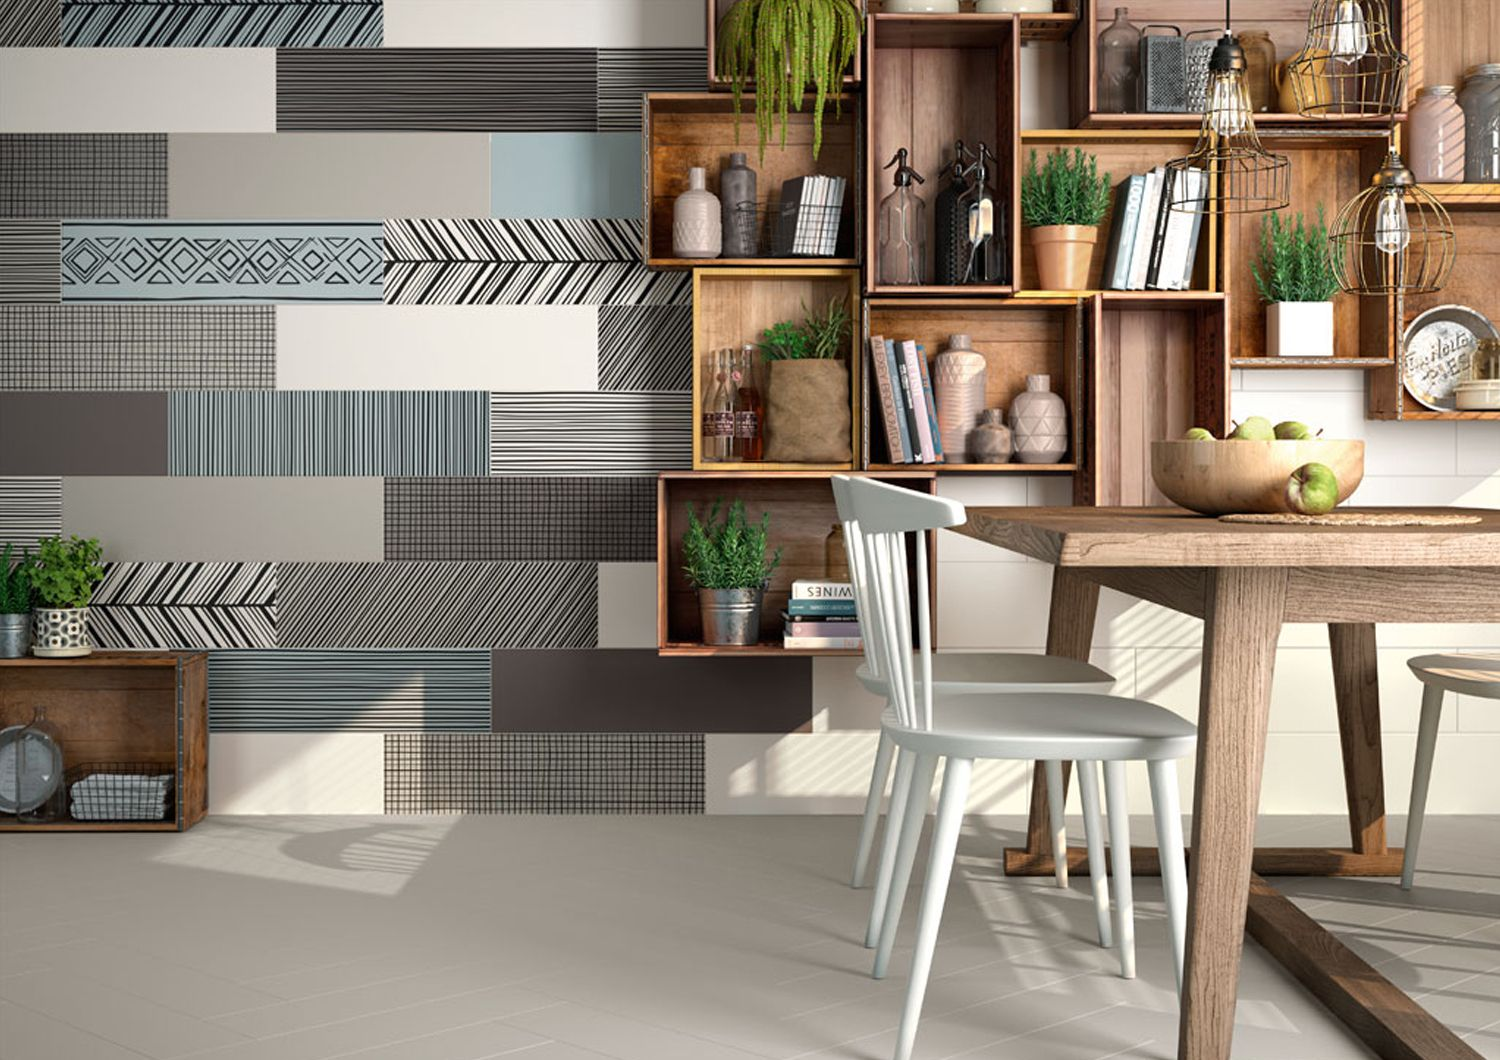 cafe decoration idea feature wall with takeno tiles from ape